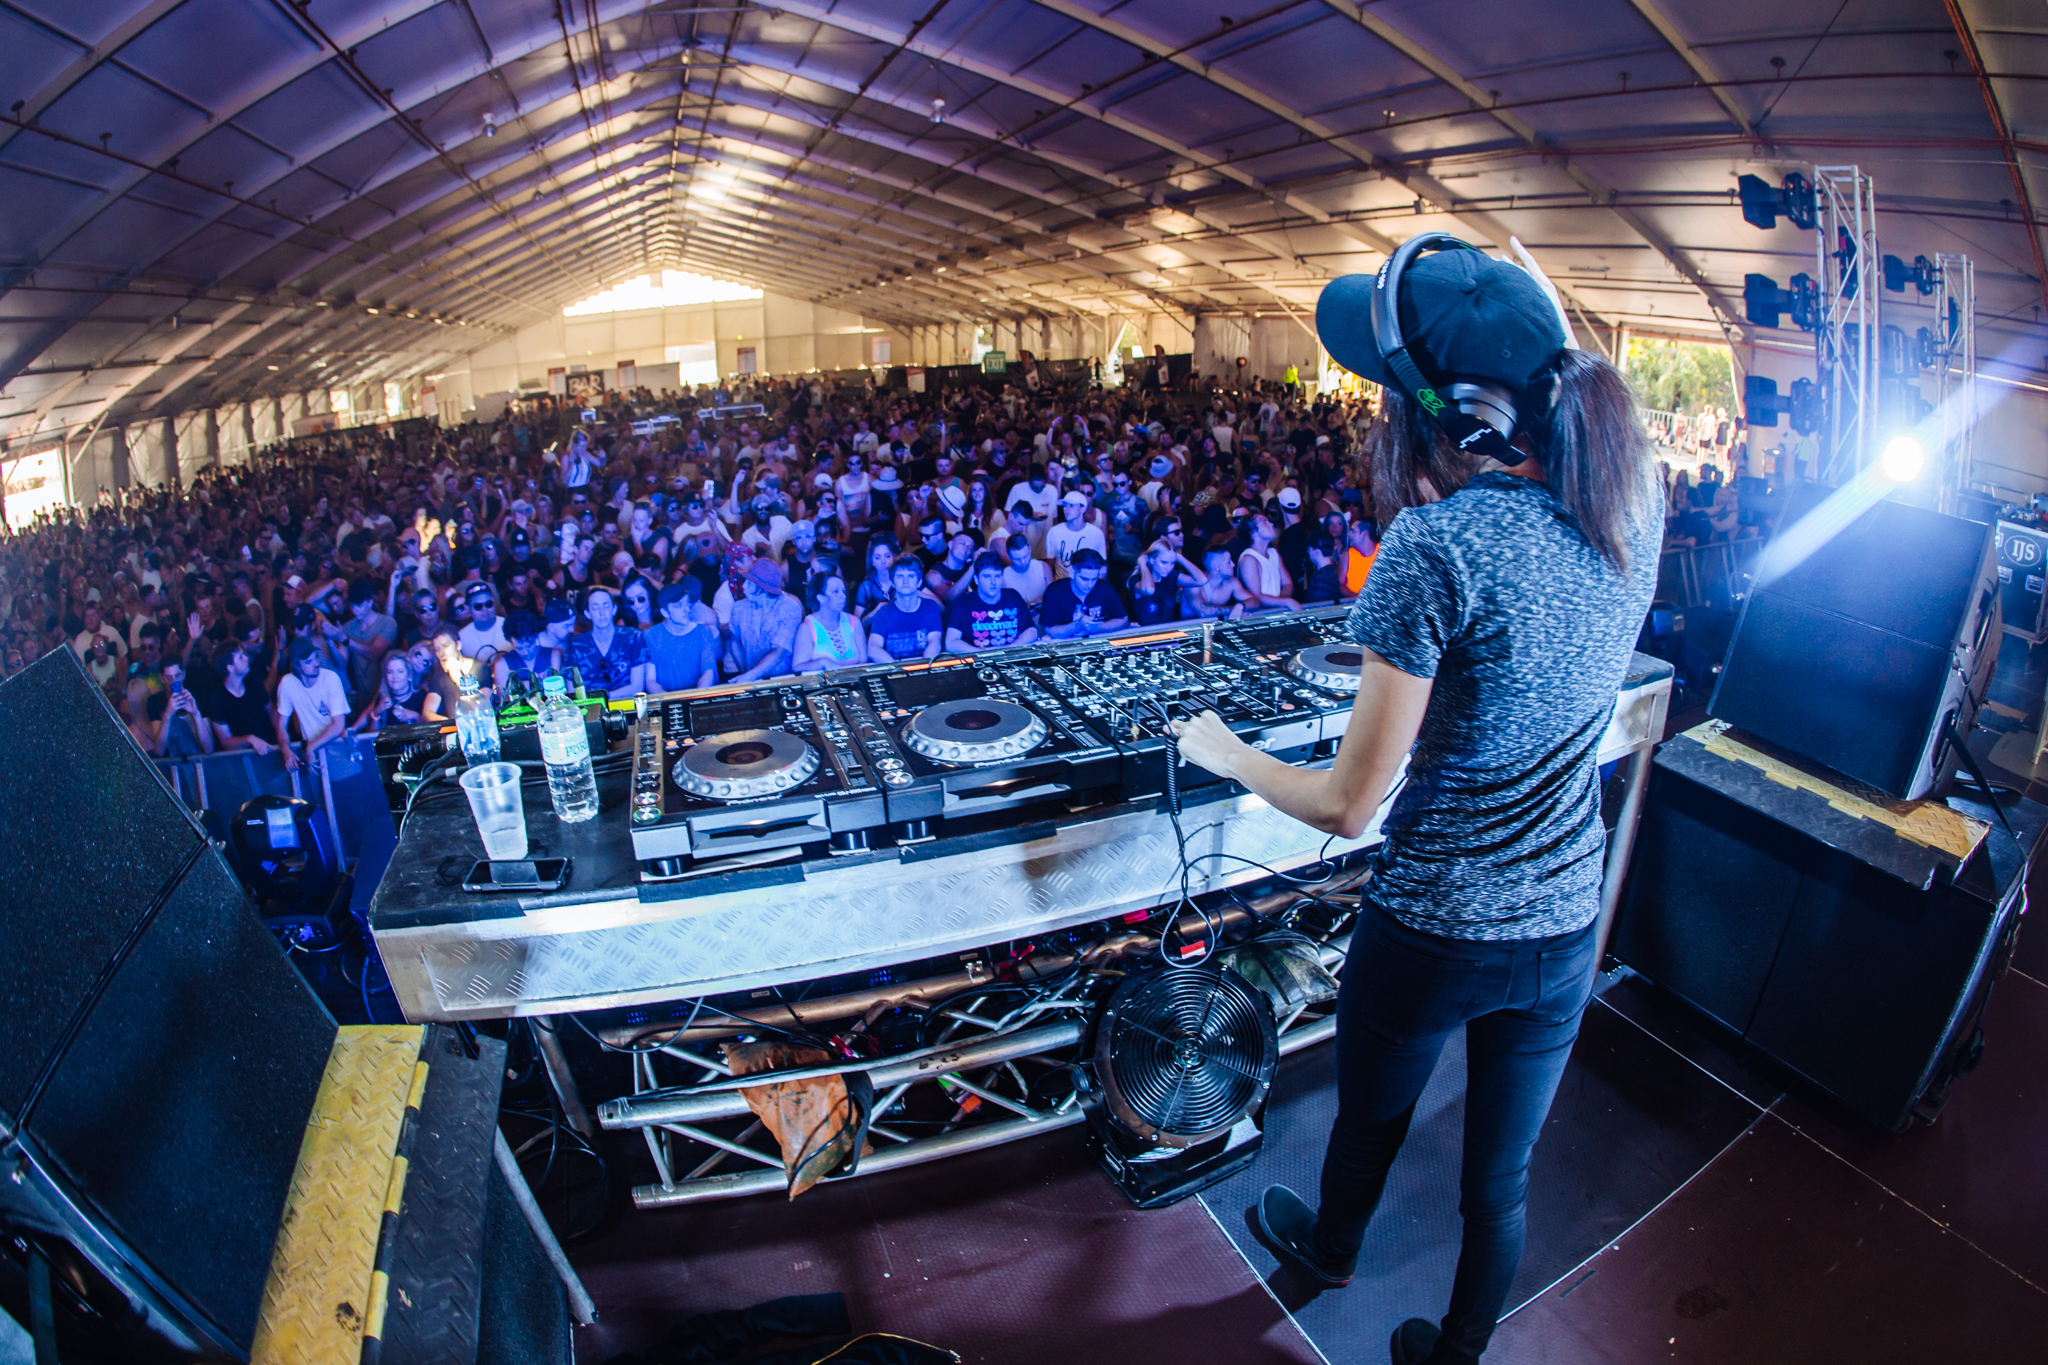 Mitch Lowe Photo - HARDfest Brisbane-38.jpg